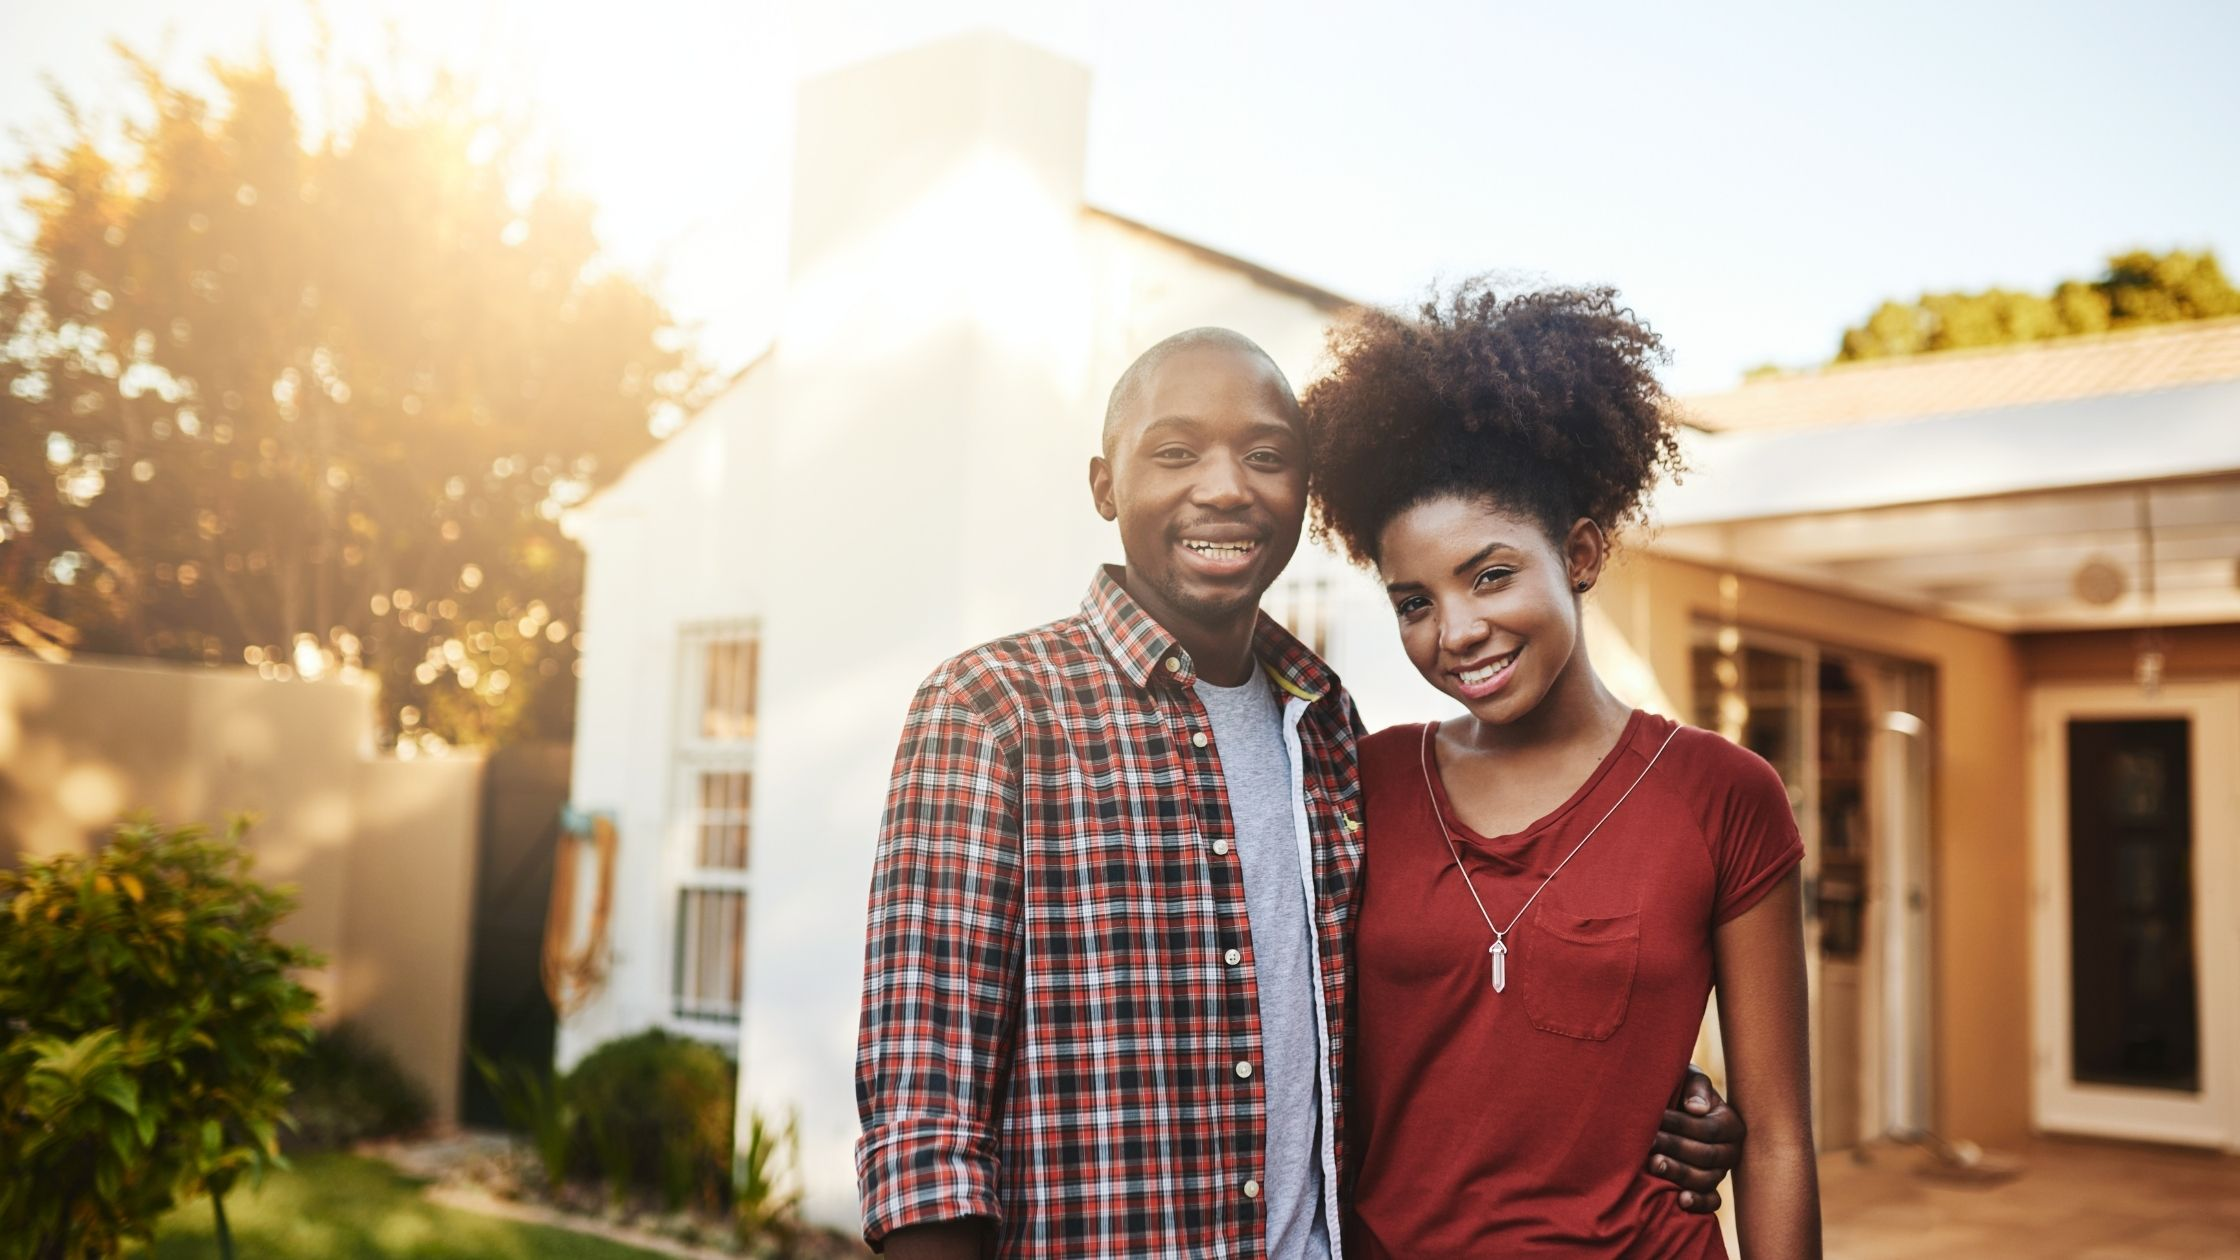 Top 7 Factors For Choosing The Best Homeowners' Insurance Policy